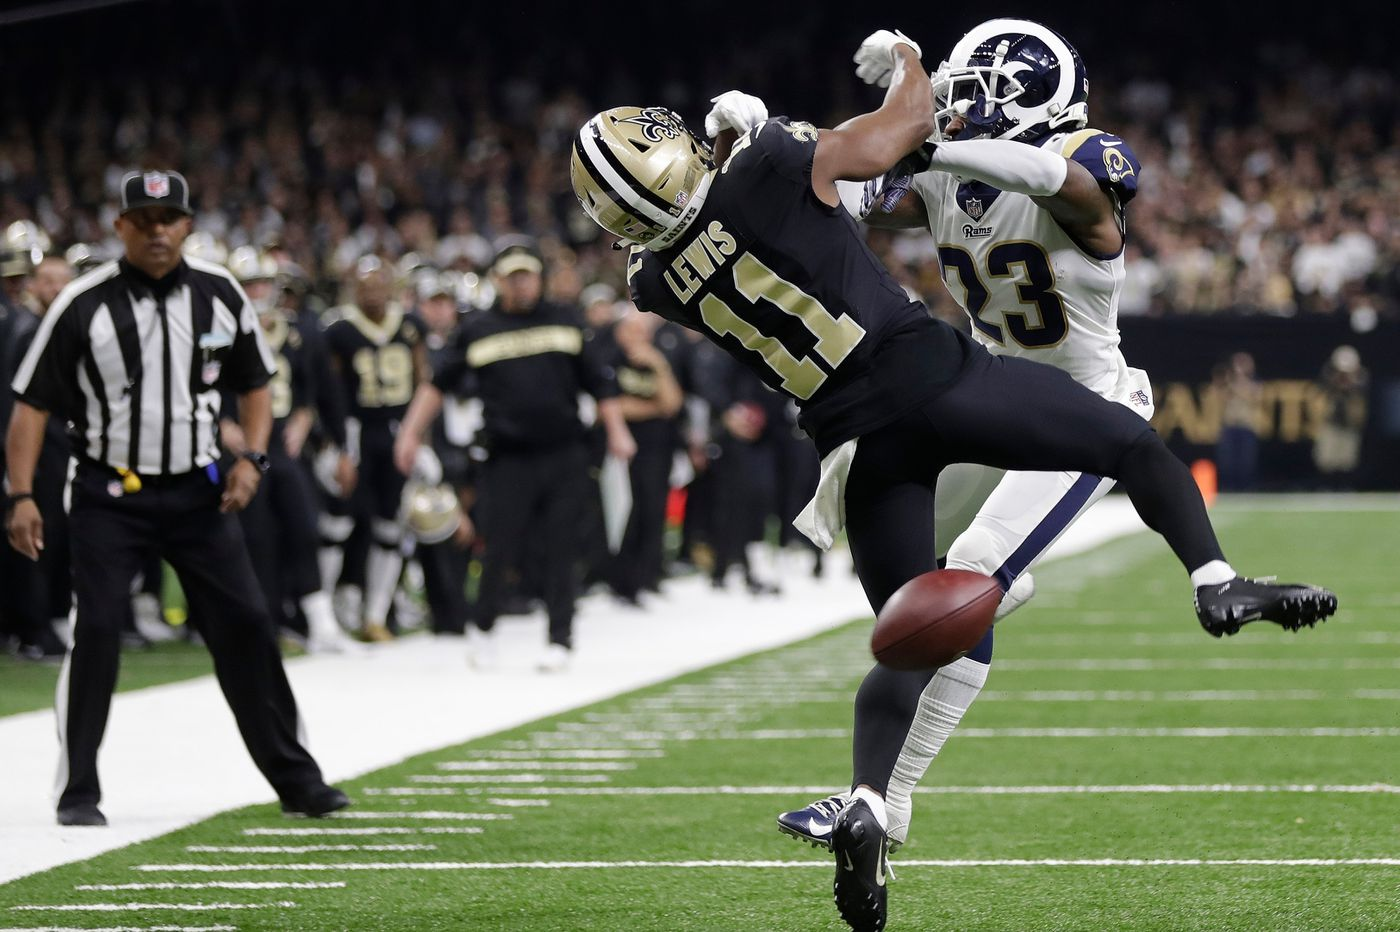 Attorneys For The NFL Say Errors Were Made In The Saints Game